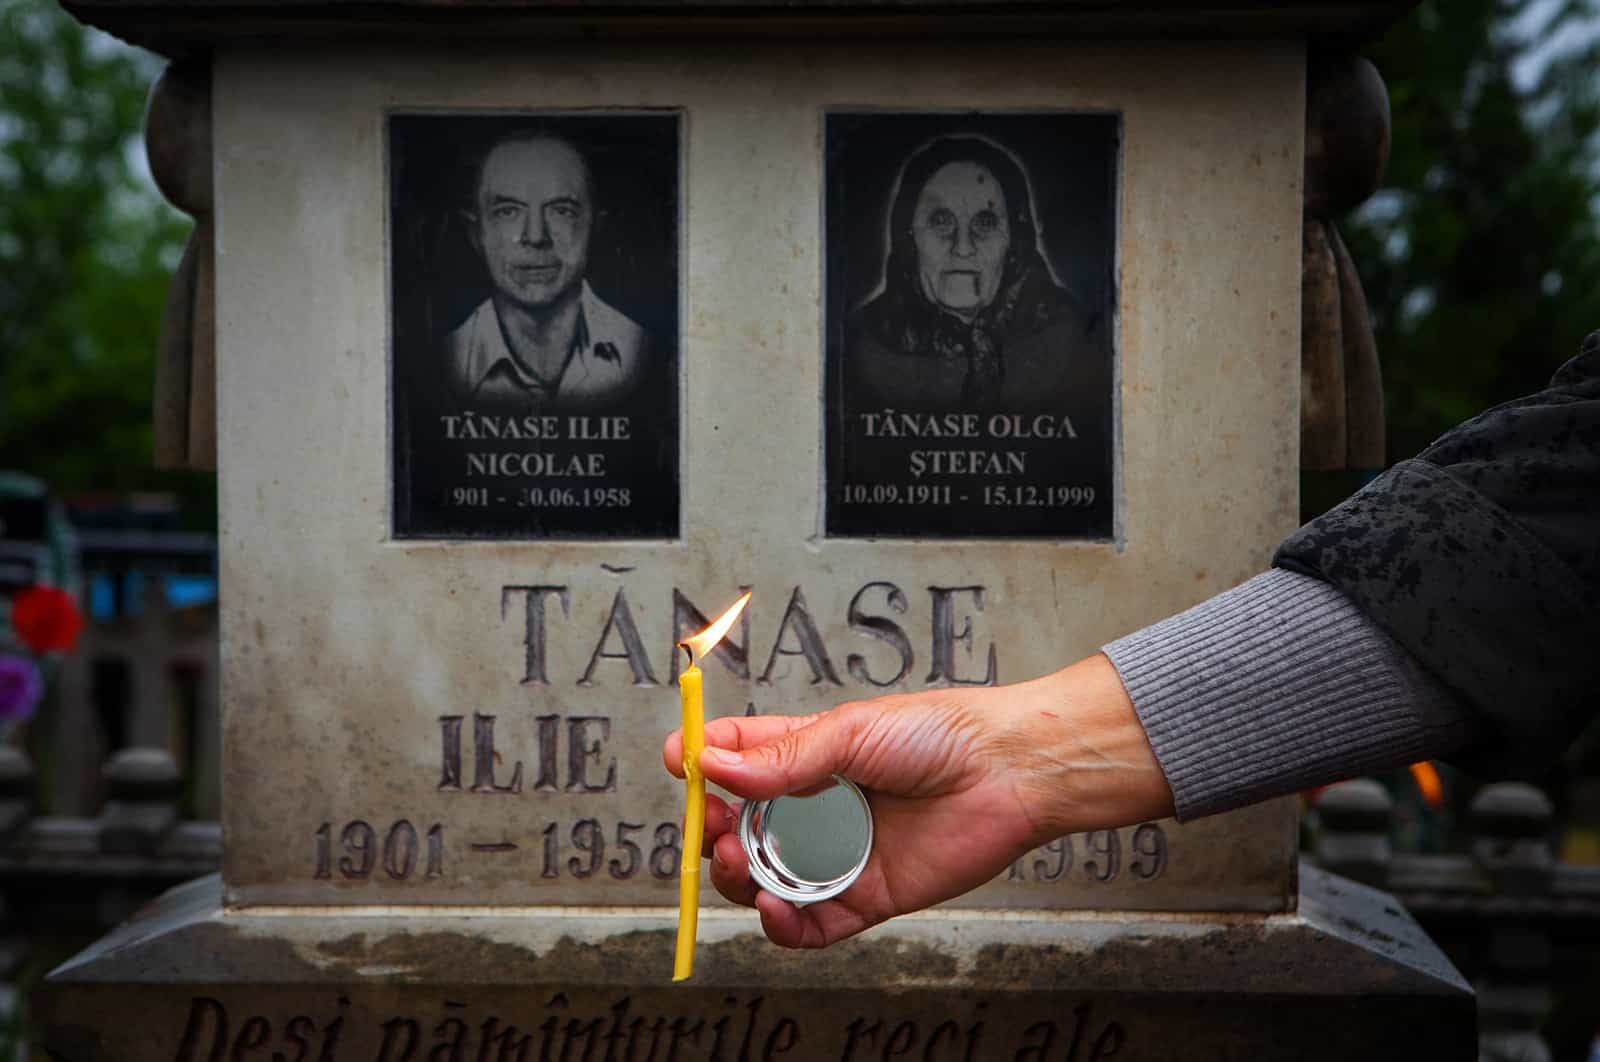 Nina Postica puts a candle in the earth in front of her parents' grave in Moldova. Photos by Clary Estes.